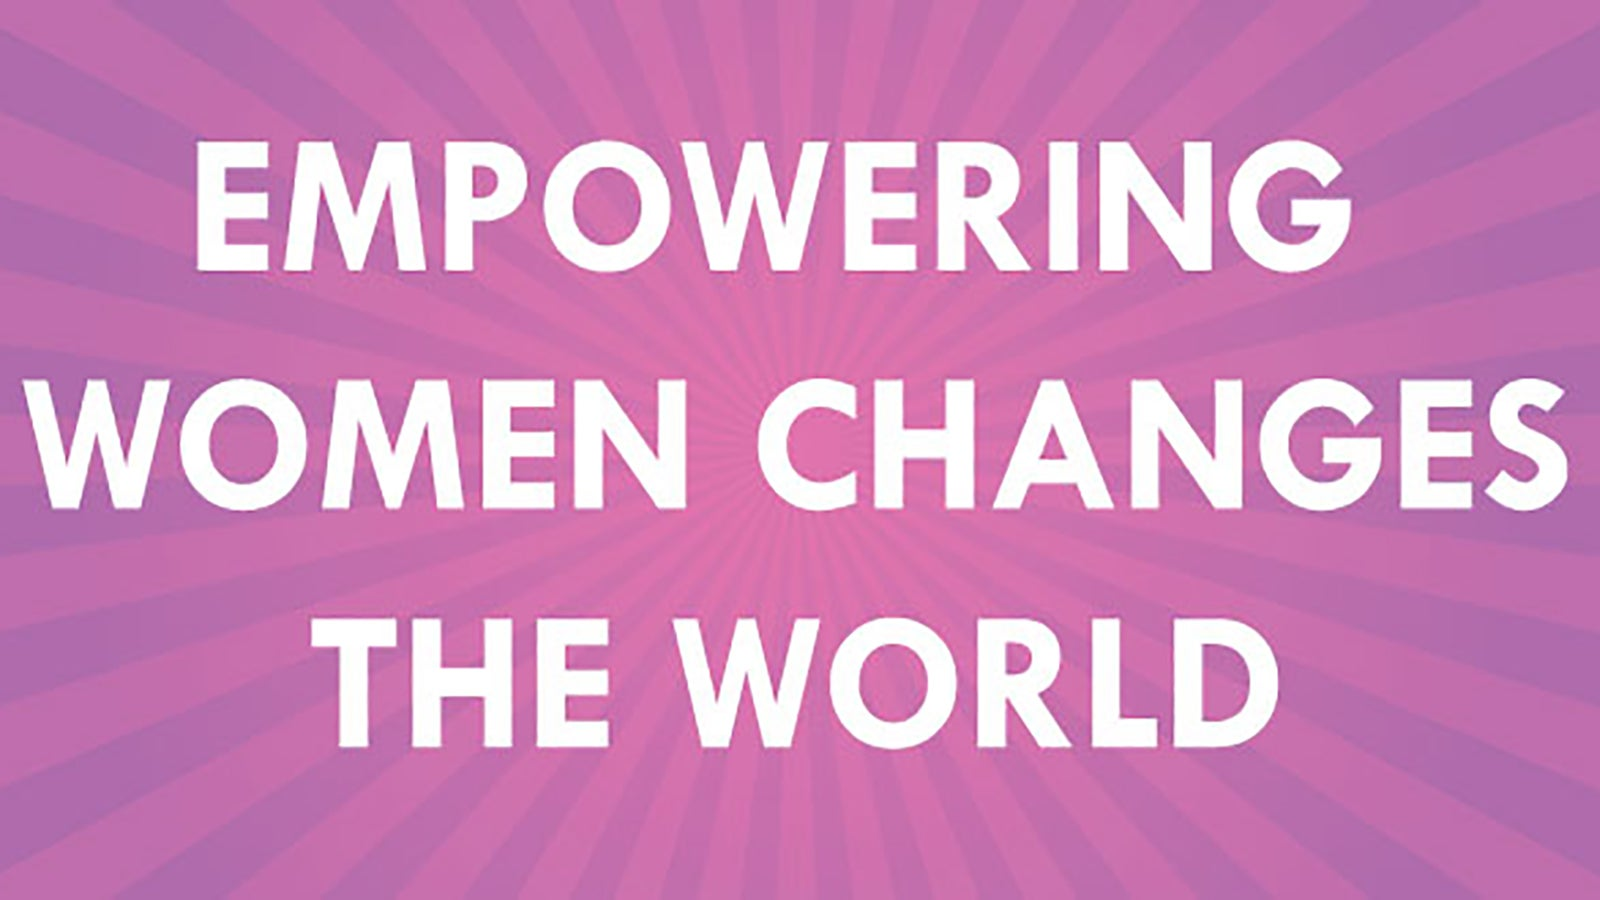 the words: 'Empowering women changes the world, on an purple background